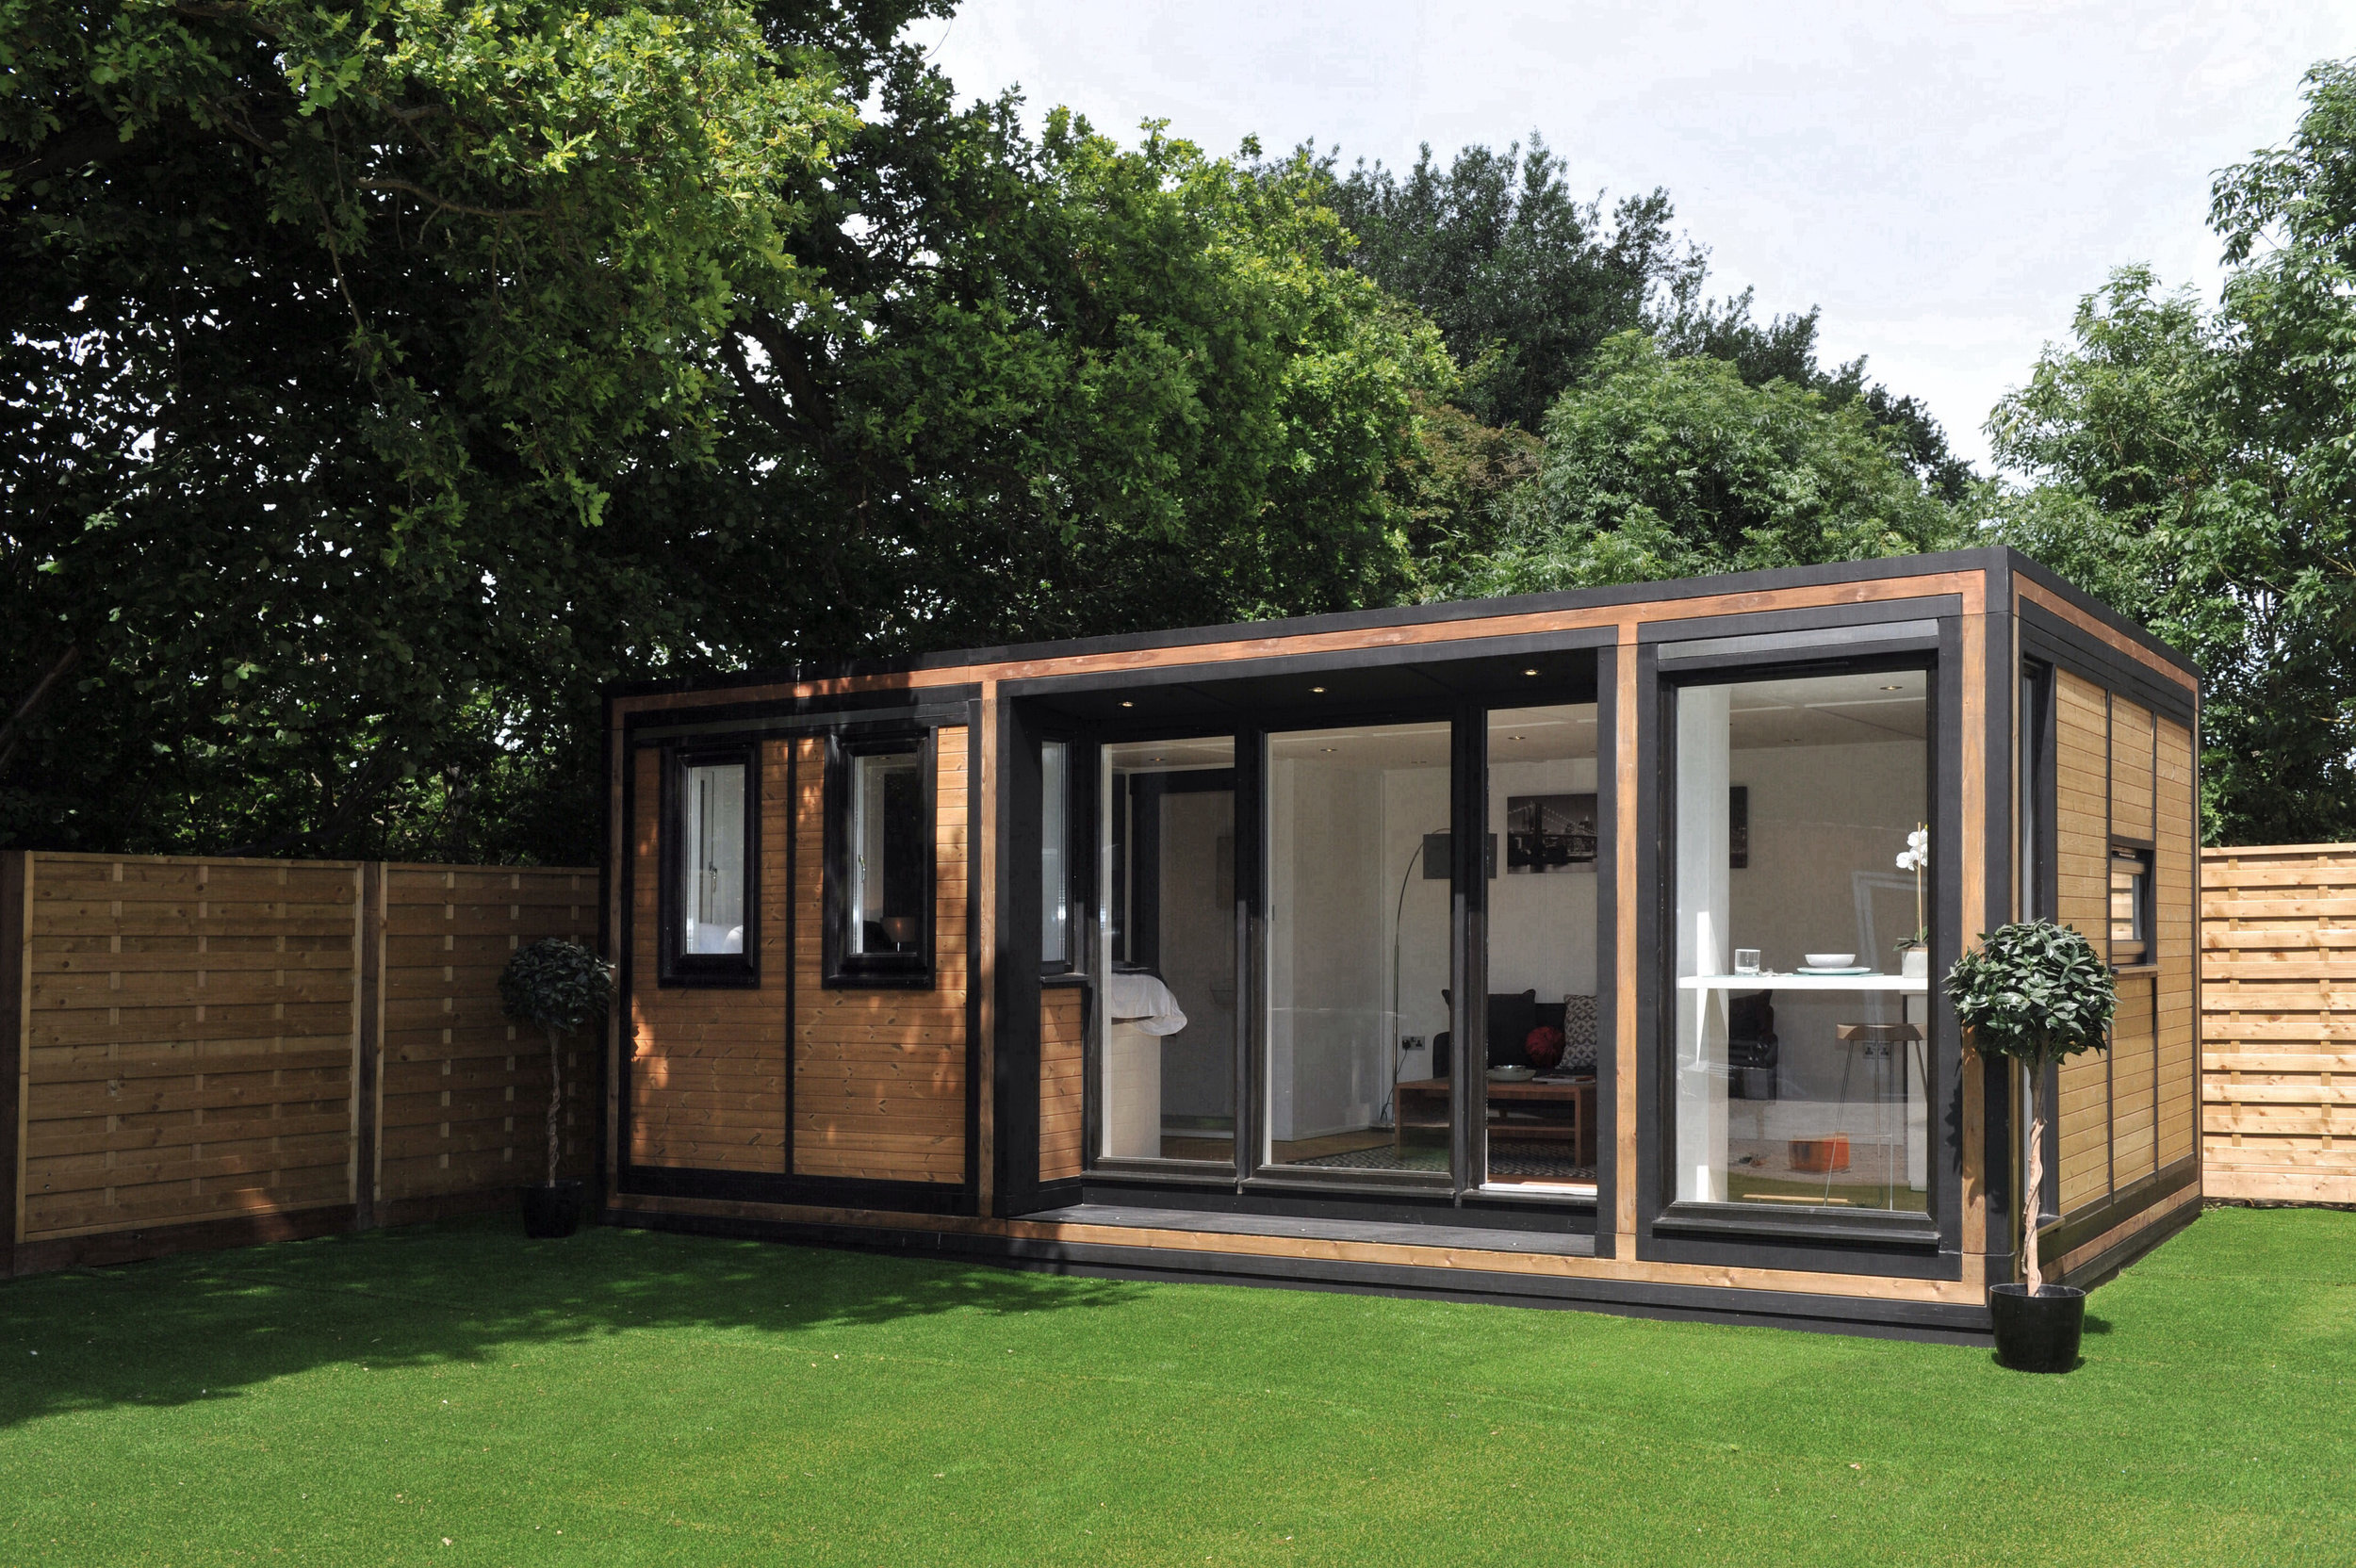 The optimal apartment in the garden, Zedbox 635 is the perfect self-contained annexe.